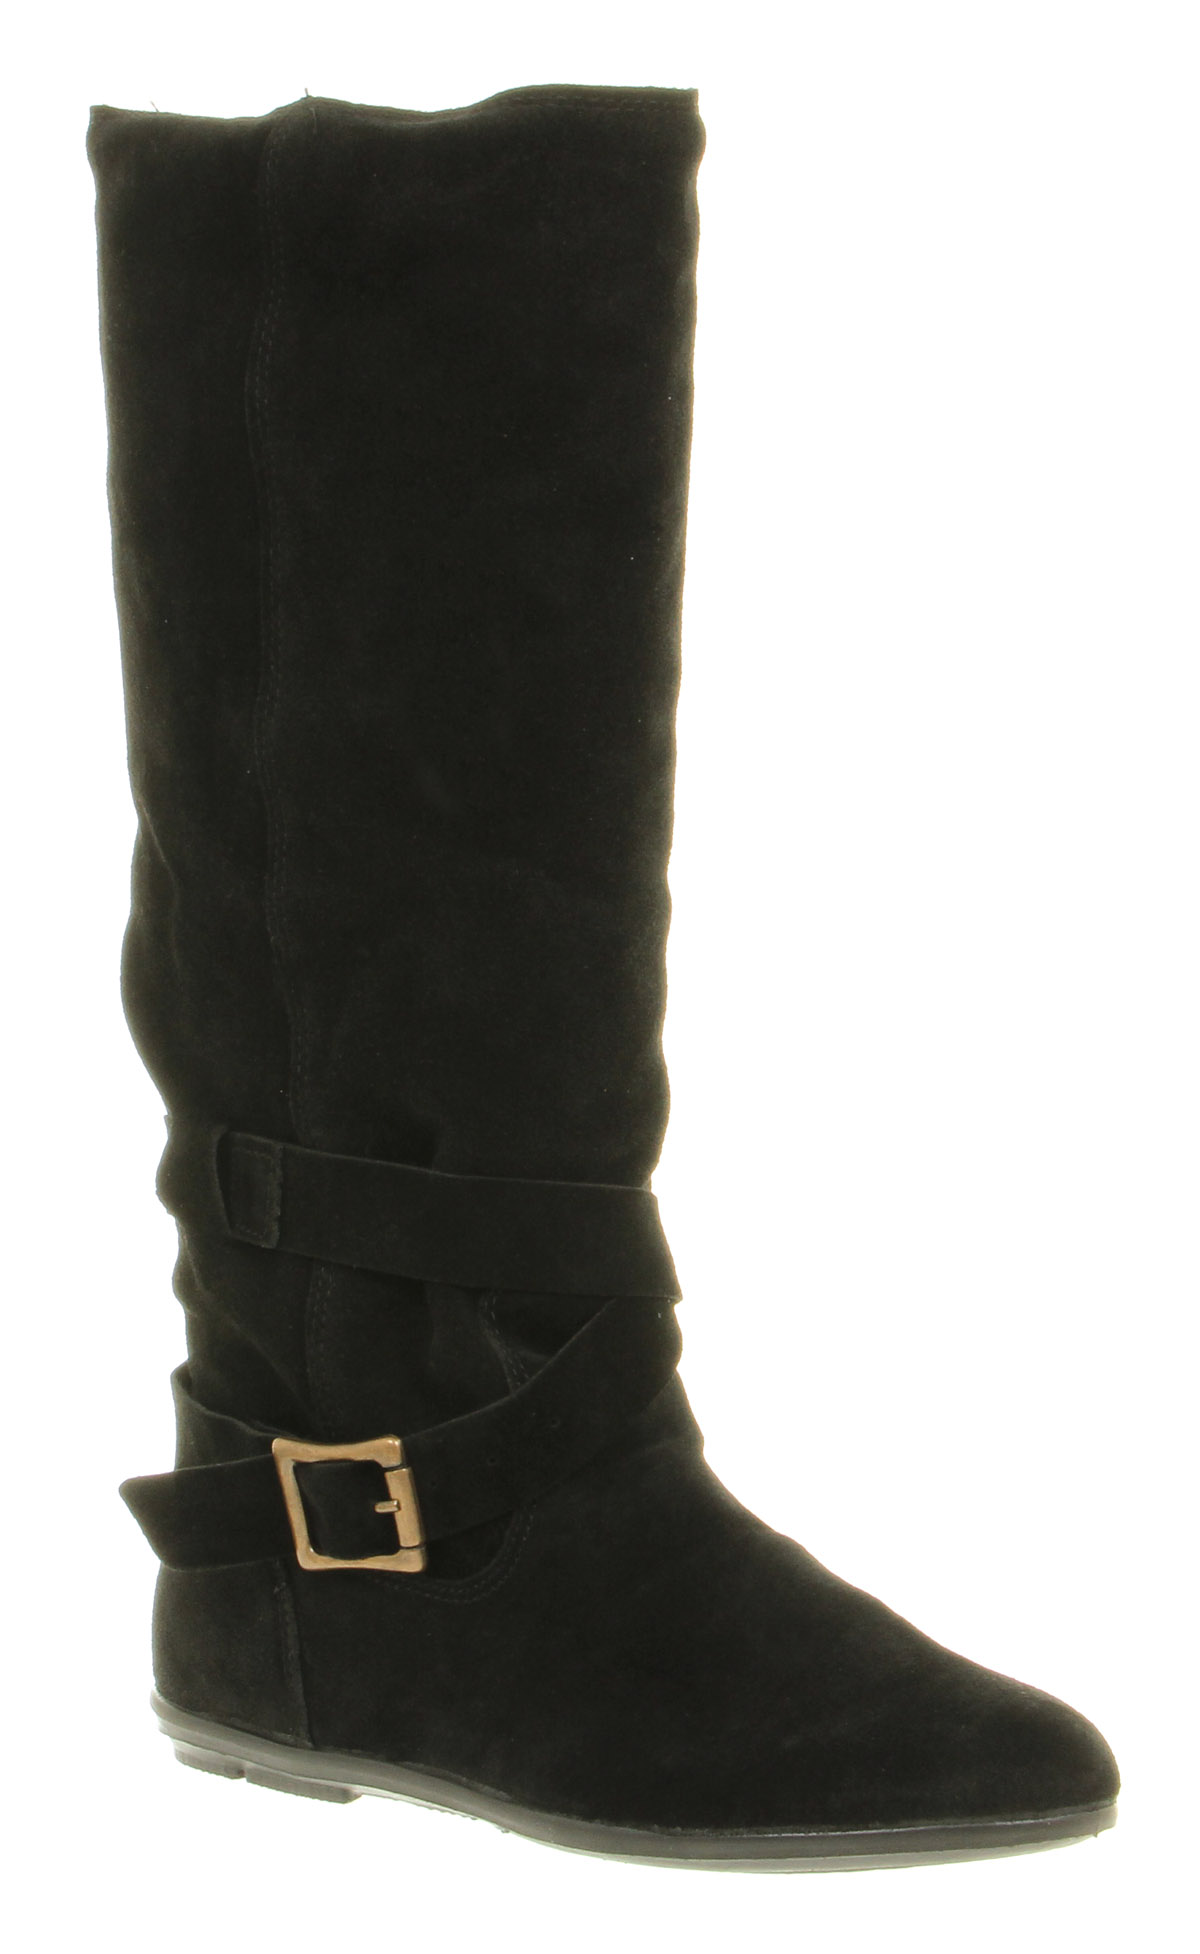 Womens-Office-Jupiter-Knee-High-Buckle-Black-Suede-Flat-Slouch-Boots